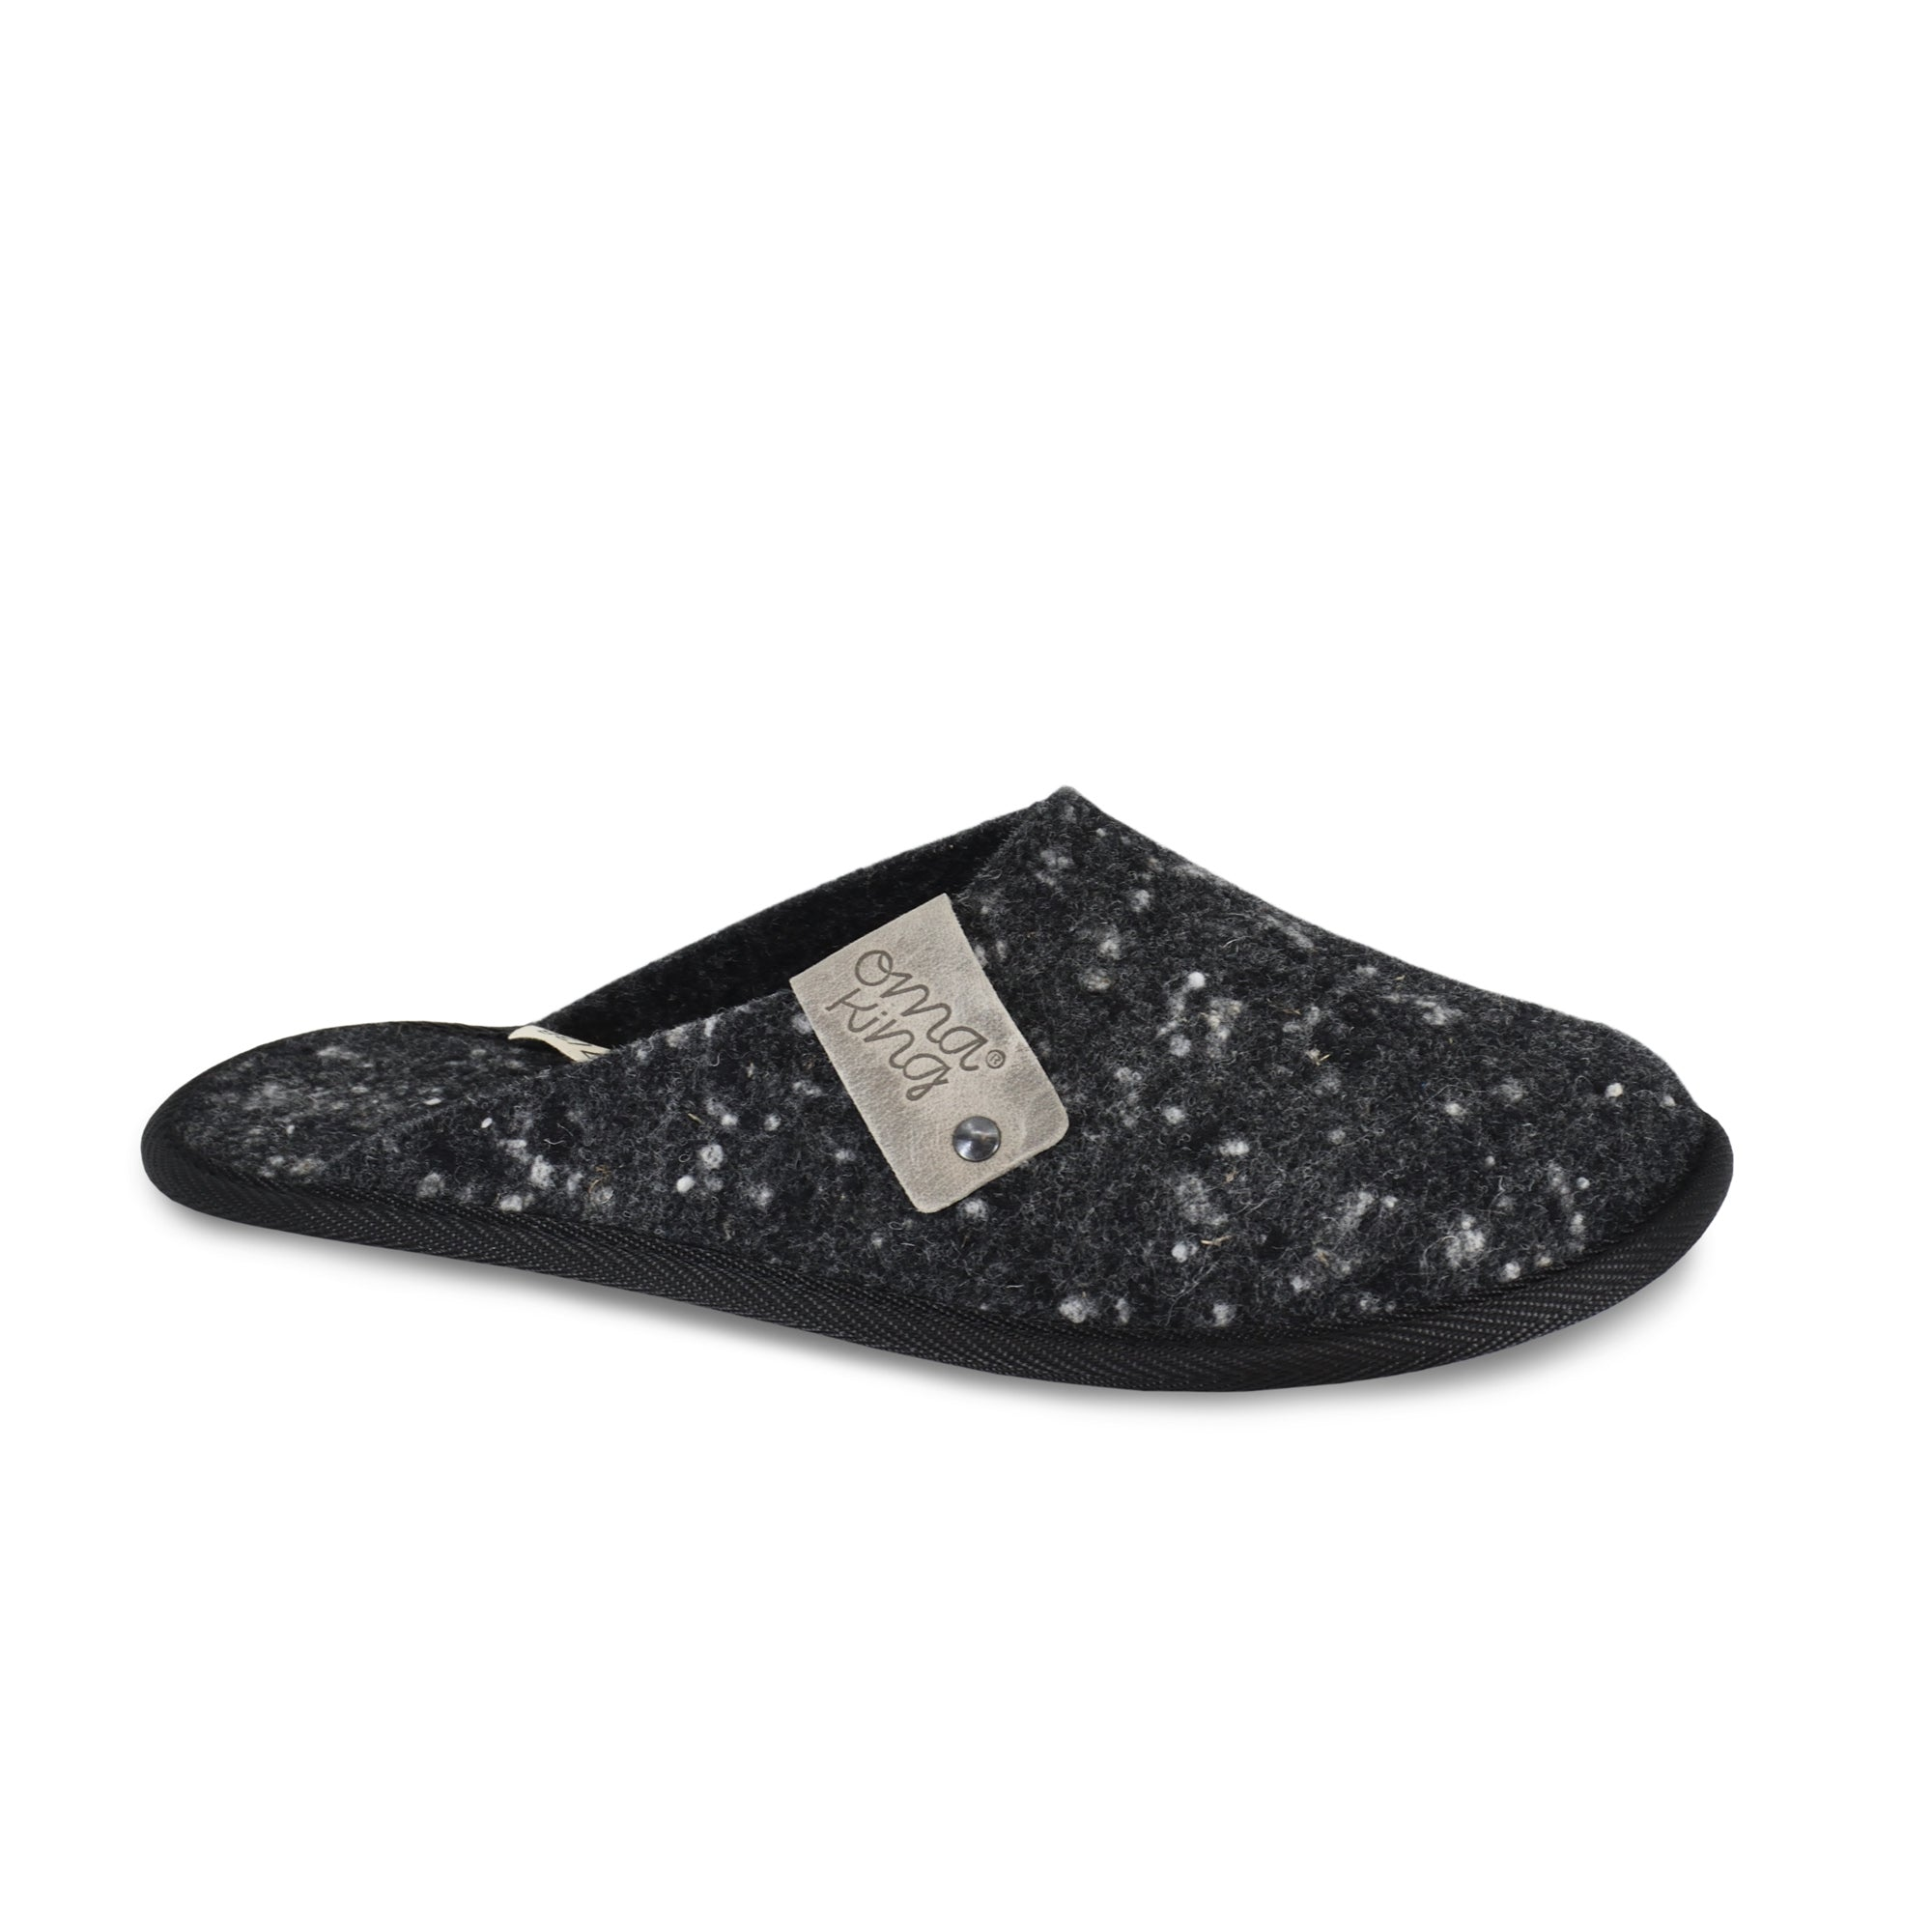 Unisex woolen slippers DOT, dark grey